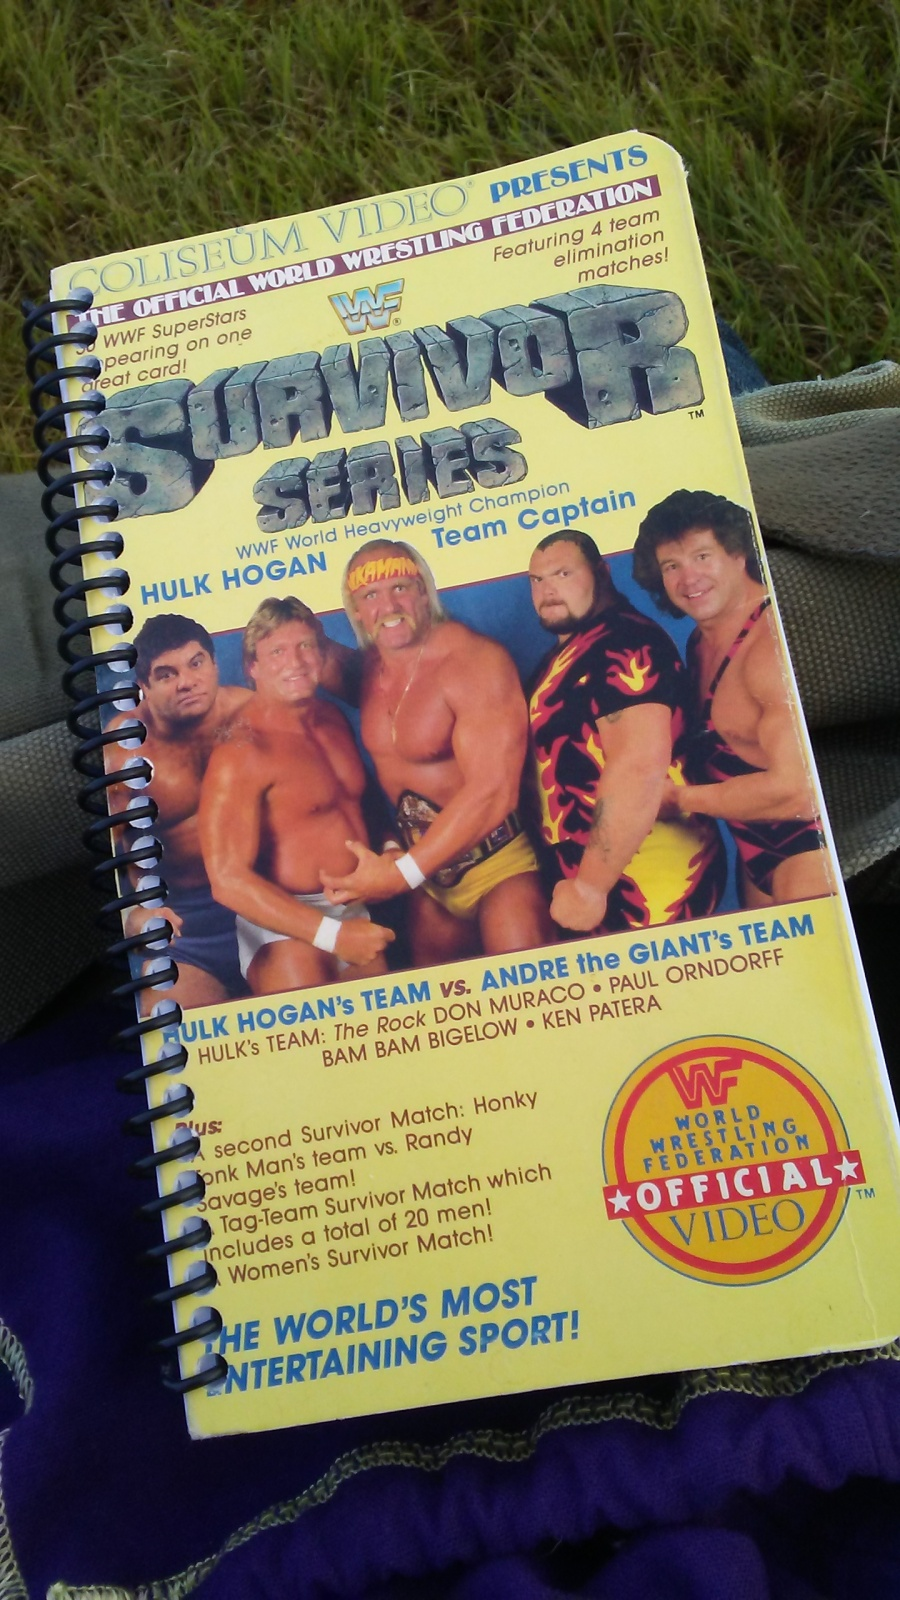 VHS Sketchbooks WWF